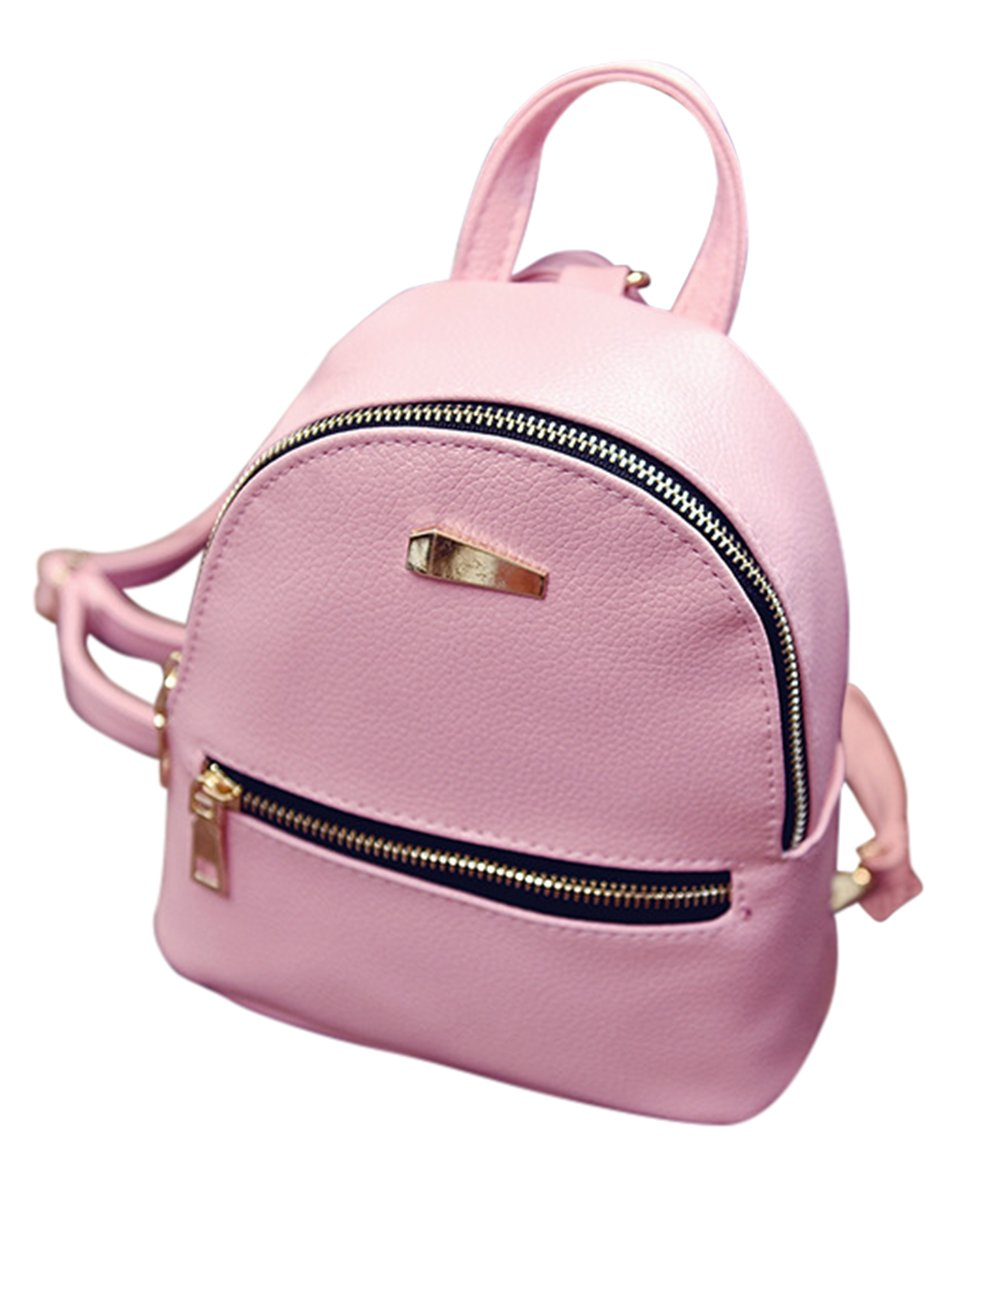 ShiningLove Cute Concise PU Leather Travel Backpack For Teenagers Girls Candy Color Shoulder Bag Casual Daypack Black by ShiningLove (Image #2)